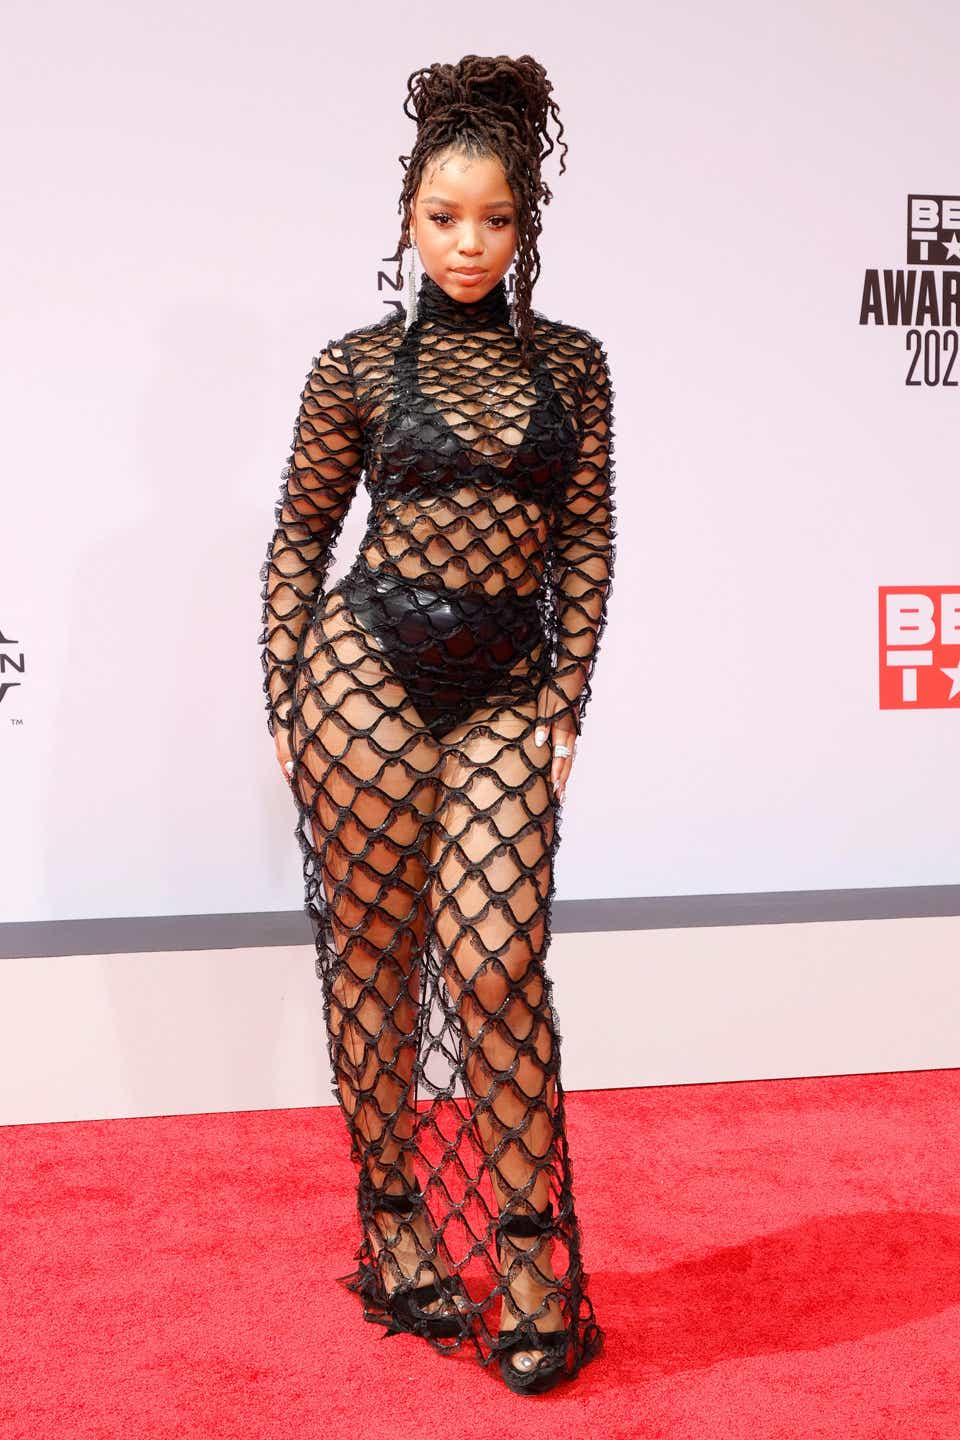 Chloe Bailey attends the BET Awards 2021 at Microsoft Theater